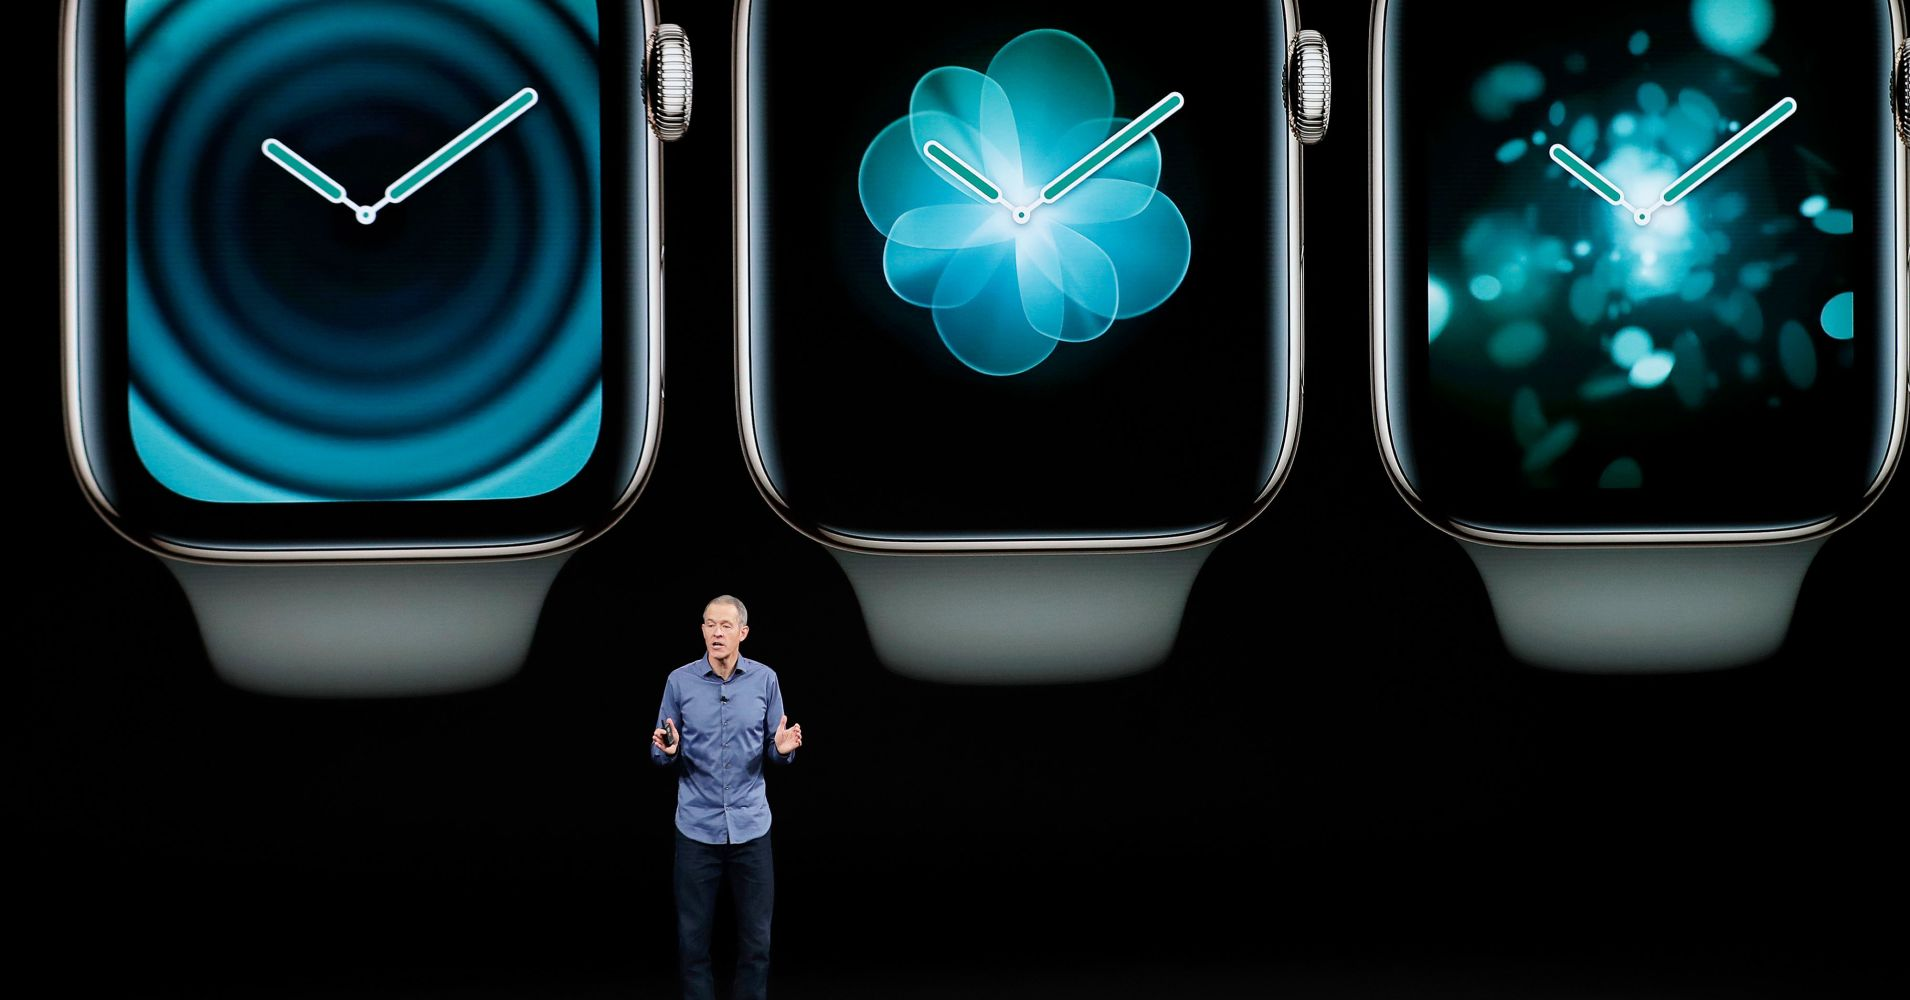 Apple introduced the Apple Watch Series 4 and the new iPhone Xs.